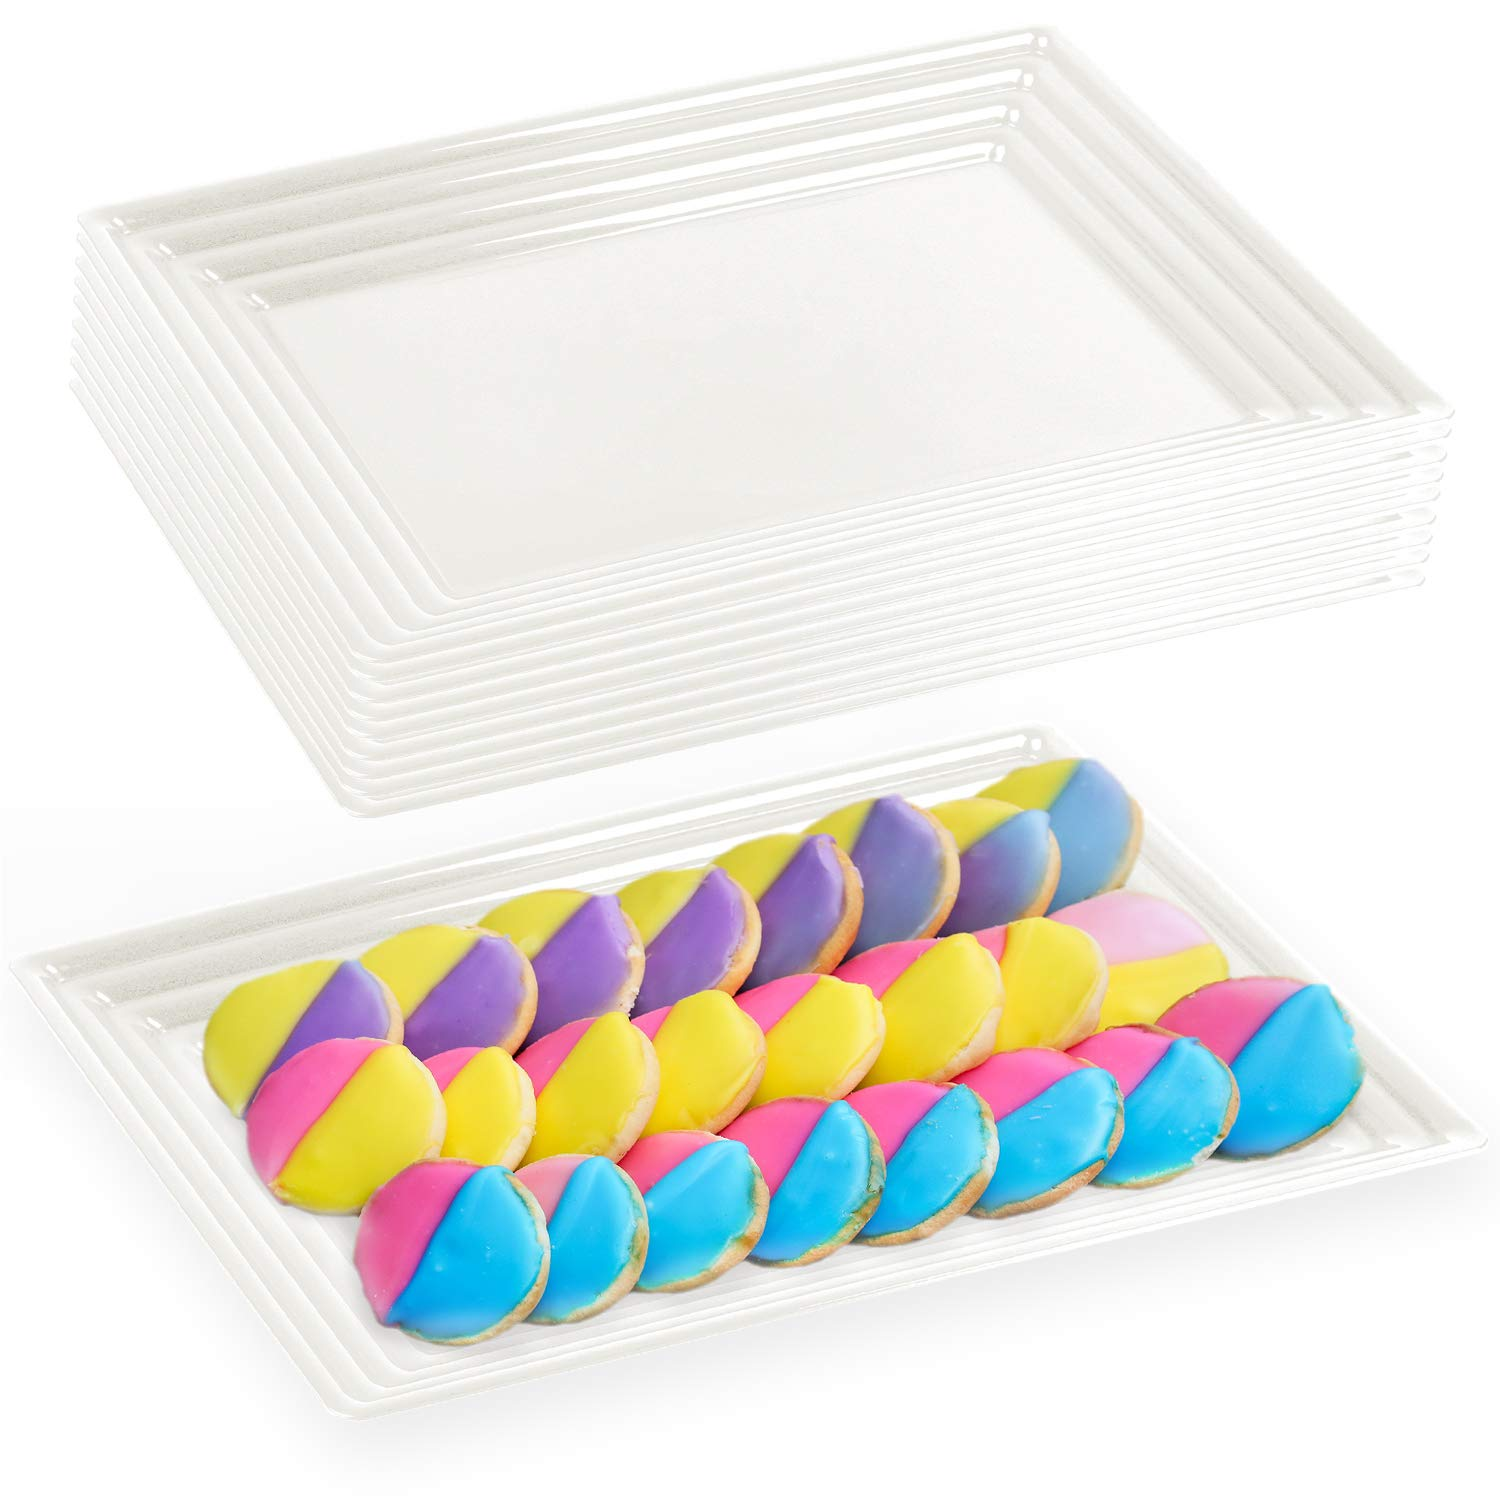 """Elegant Disposable Plastic Serving Trays 24 Pcs – Heavyweight Fancy 11""""x16"""" Rectangular White Large Serving Platters - Reusable Party Appetizer Tray For Wedding, Thanksgiving, Birthday & All Occasions"""